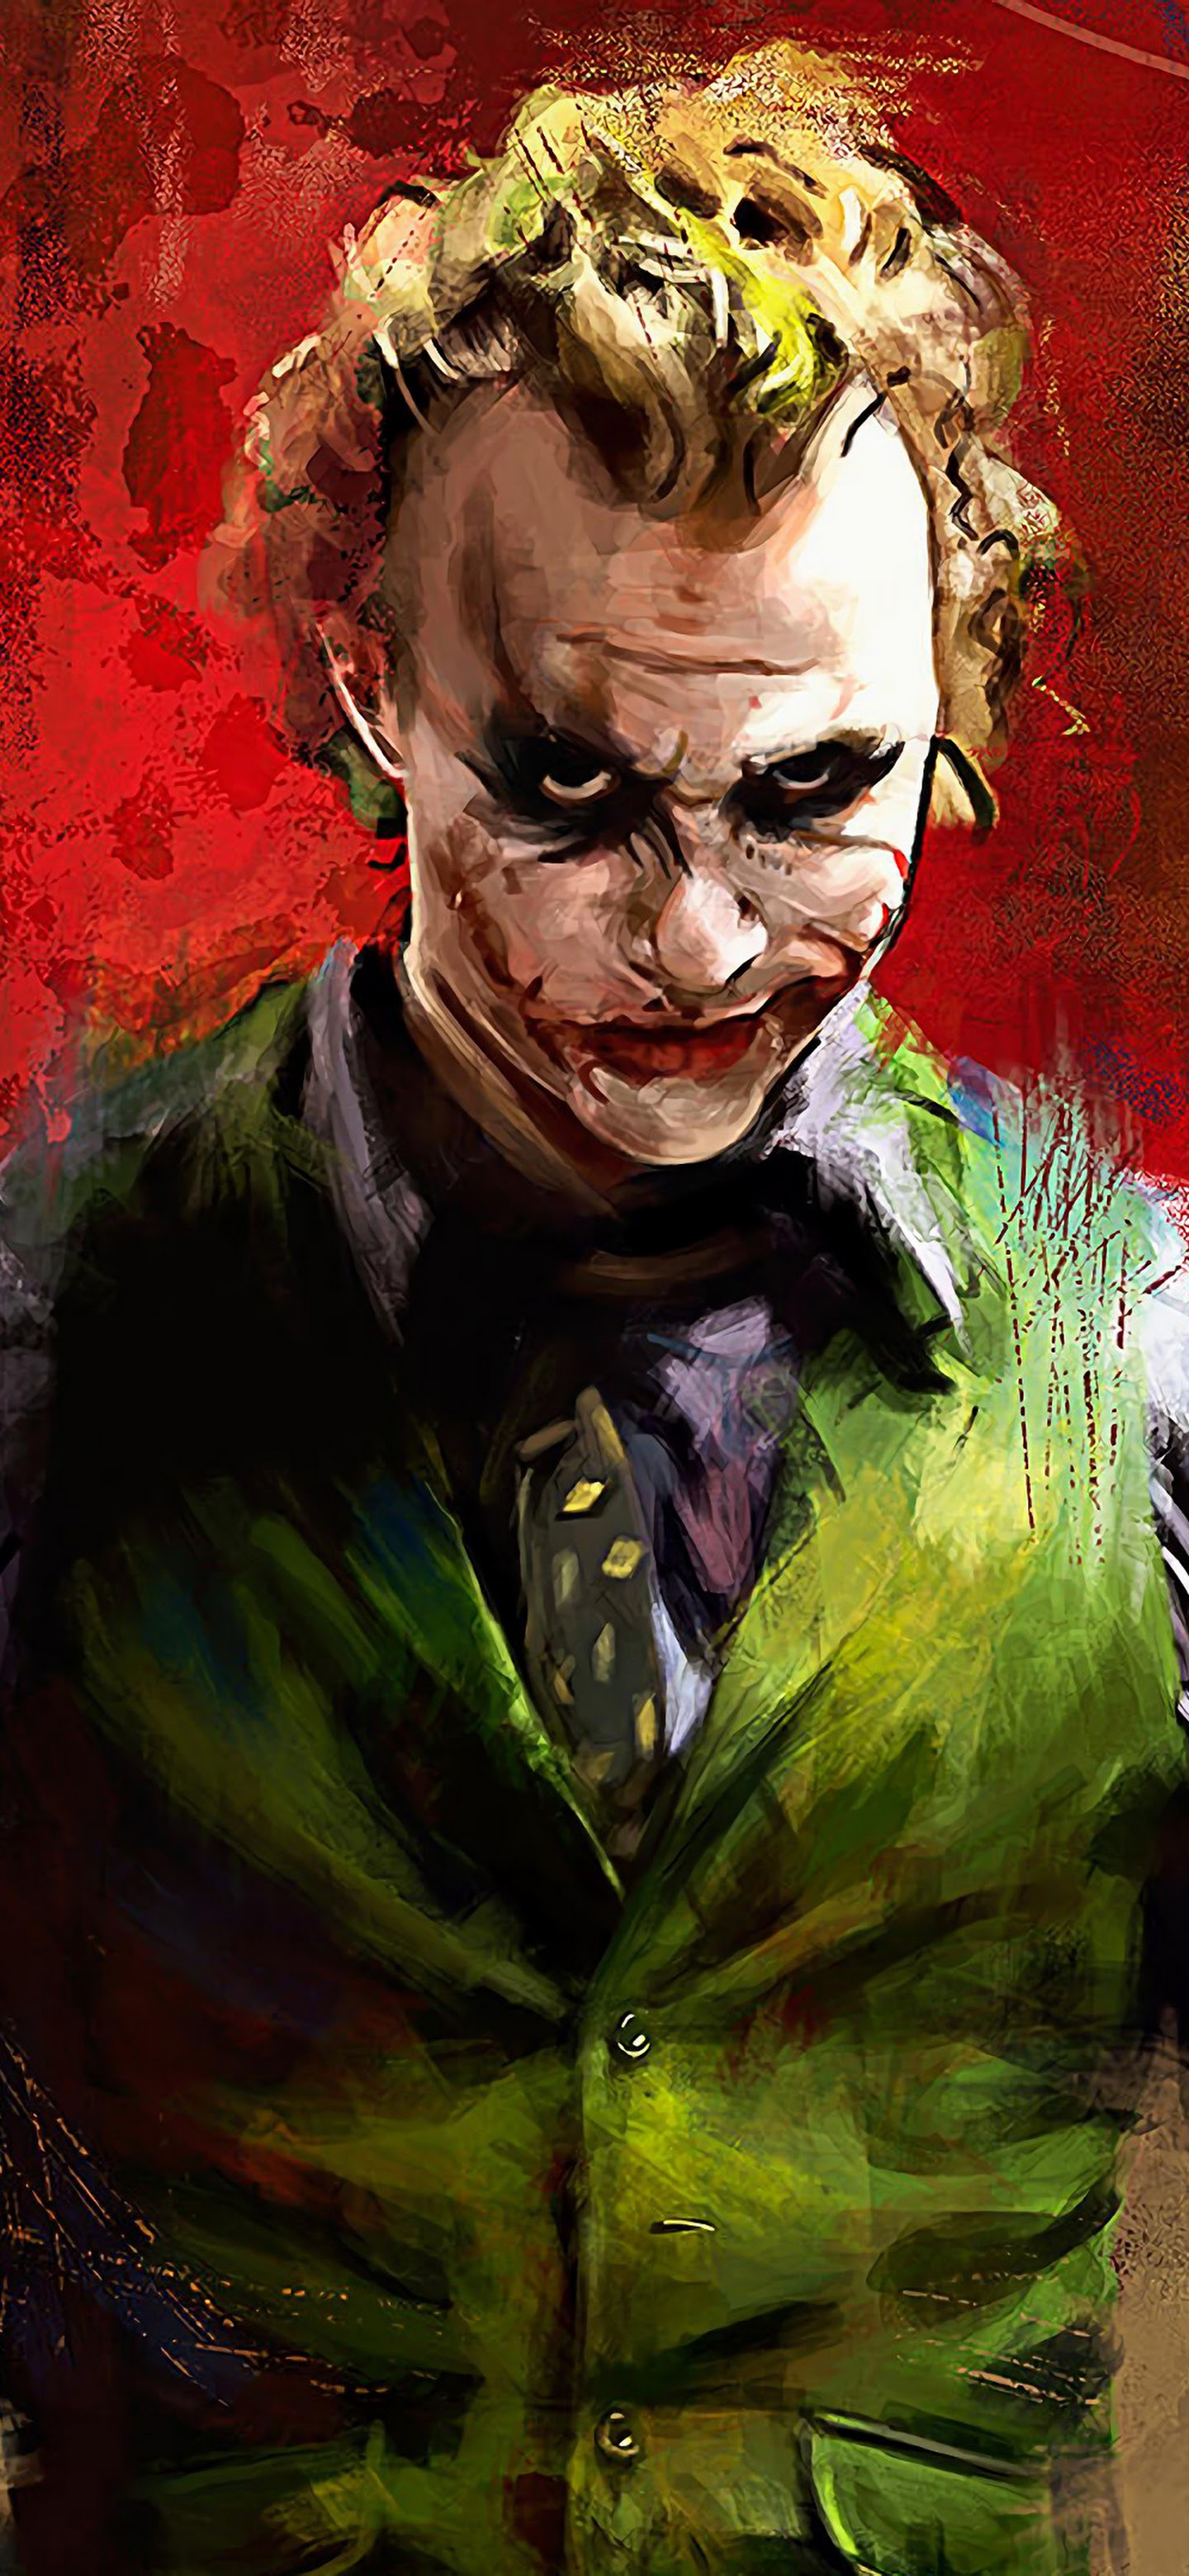 Joker Heath Ledger 4k Wallpaper 139